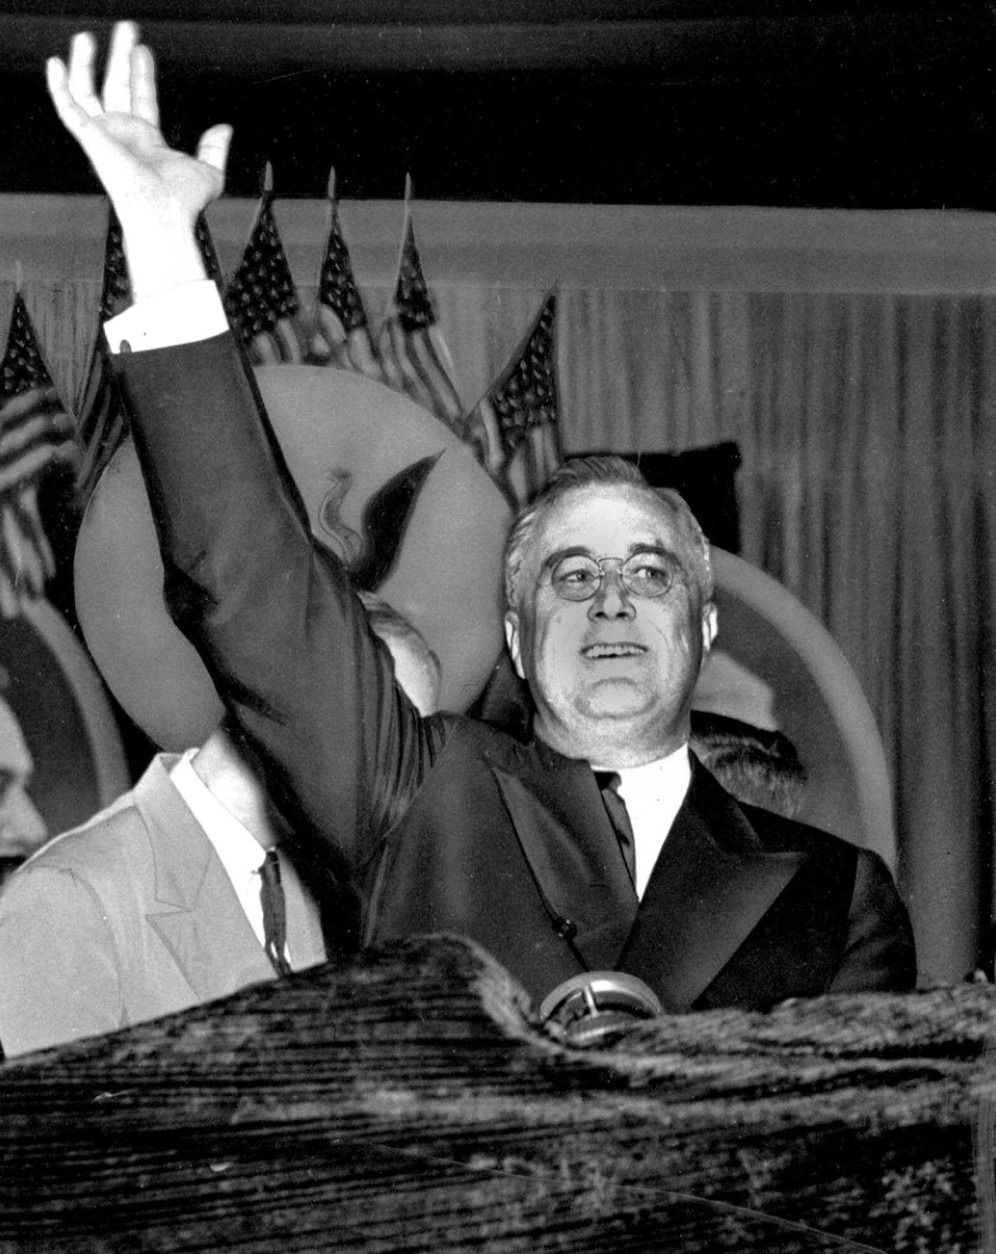 FILE – In this June 23, 1936, file photo, President Franklin D. Roosevelt, running for re-election, waves during the Democratic National Convention held at Convention Hall in Philadelphia. Philadelphia hosted the Democratic National Convention in 1936 and 1948 and the Republican National Convention in 1865, 1872, 1900, 1940, 1948 and 2000, and five of the eight candidates chosen were victorious in November. Philadelphia is hosting the Democratic National Convention from Monday through Thursday, July 25 to 28, 2016. (AP Photo, File)